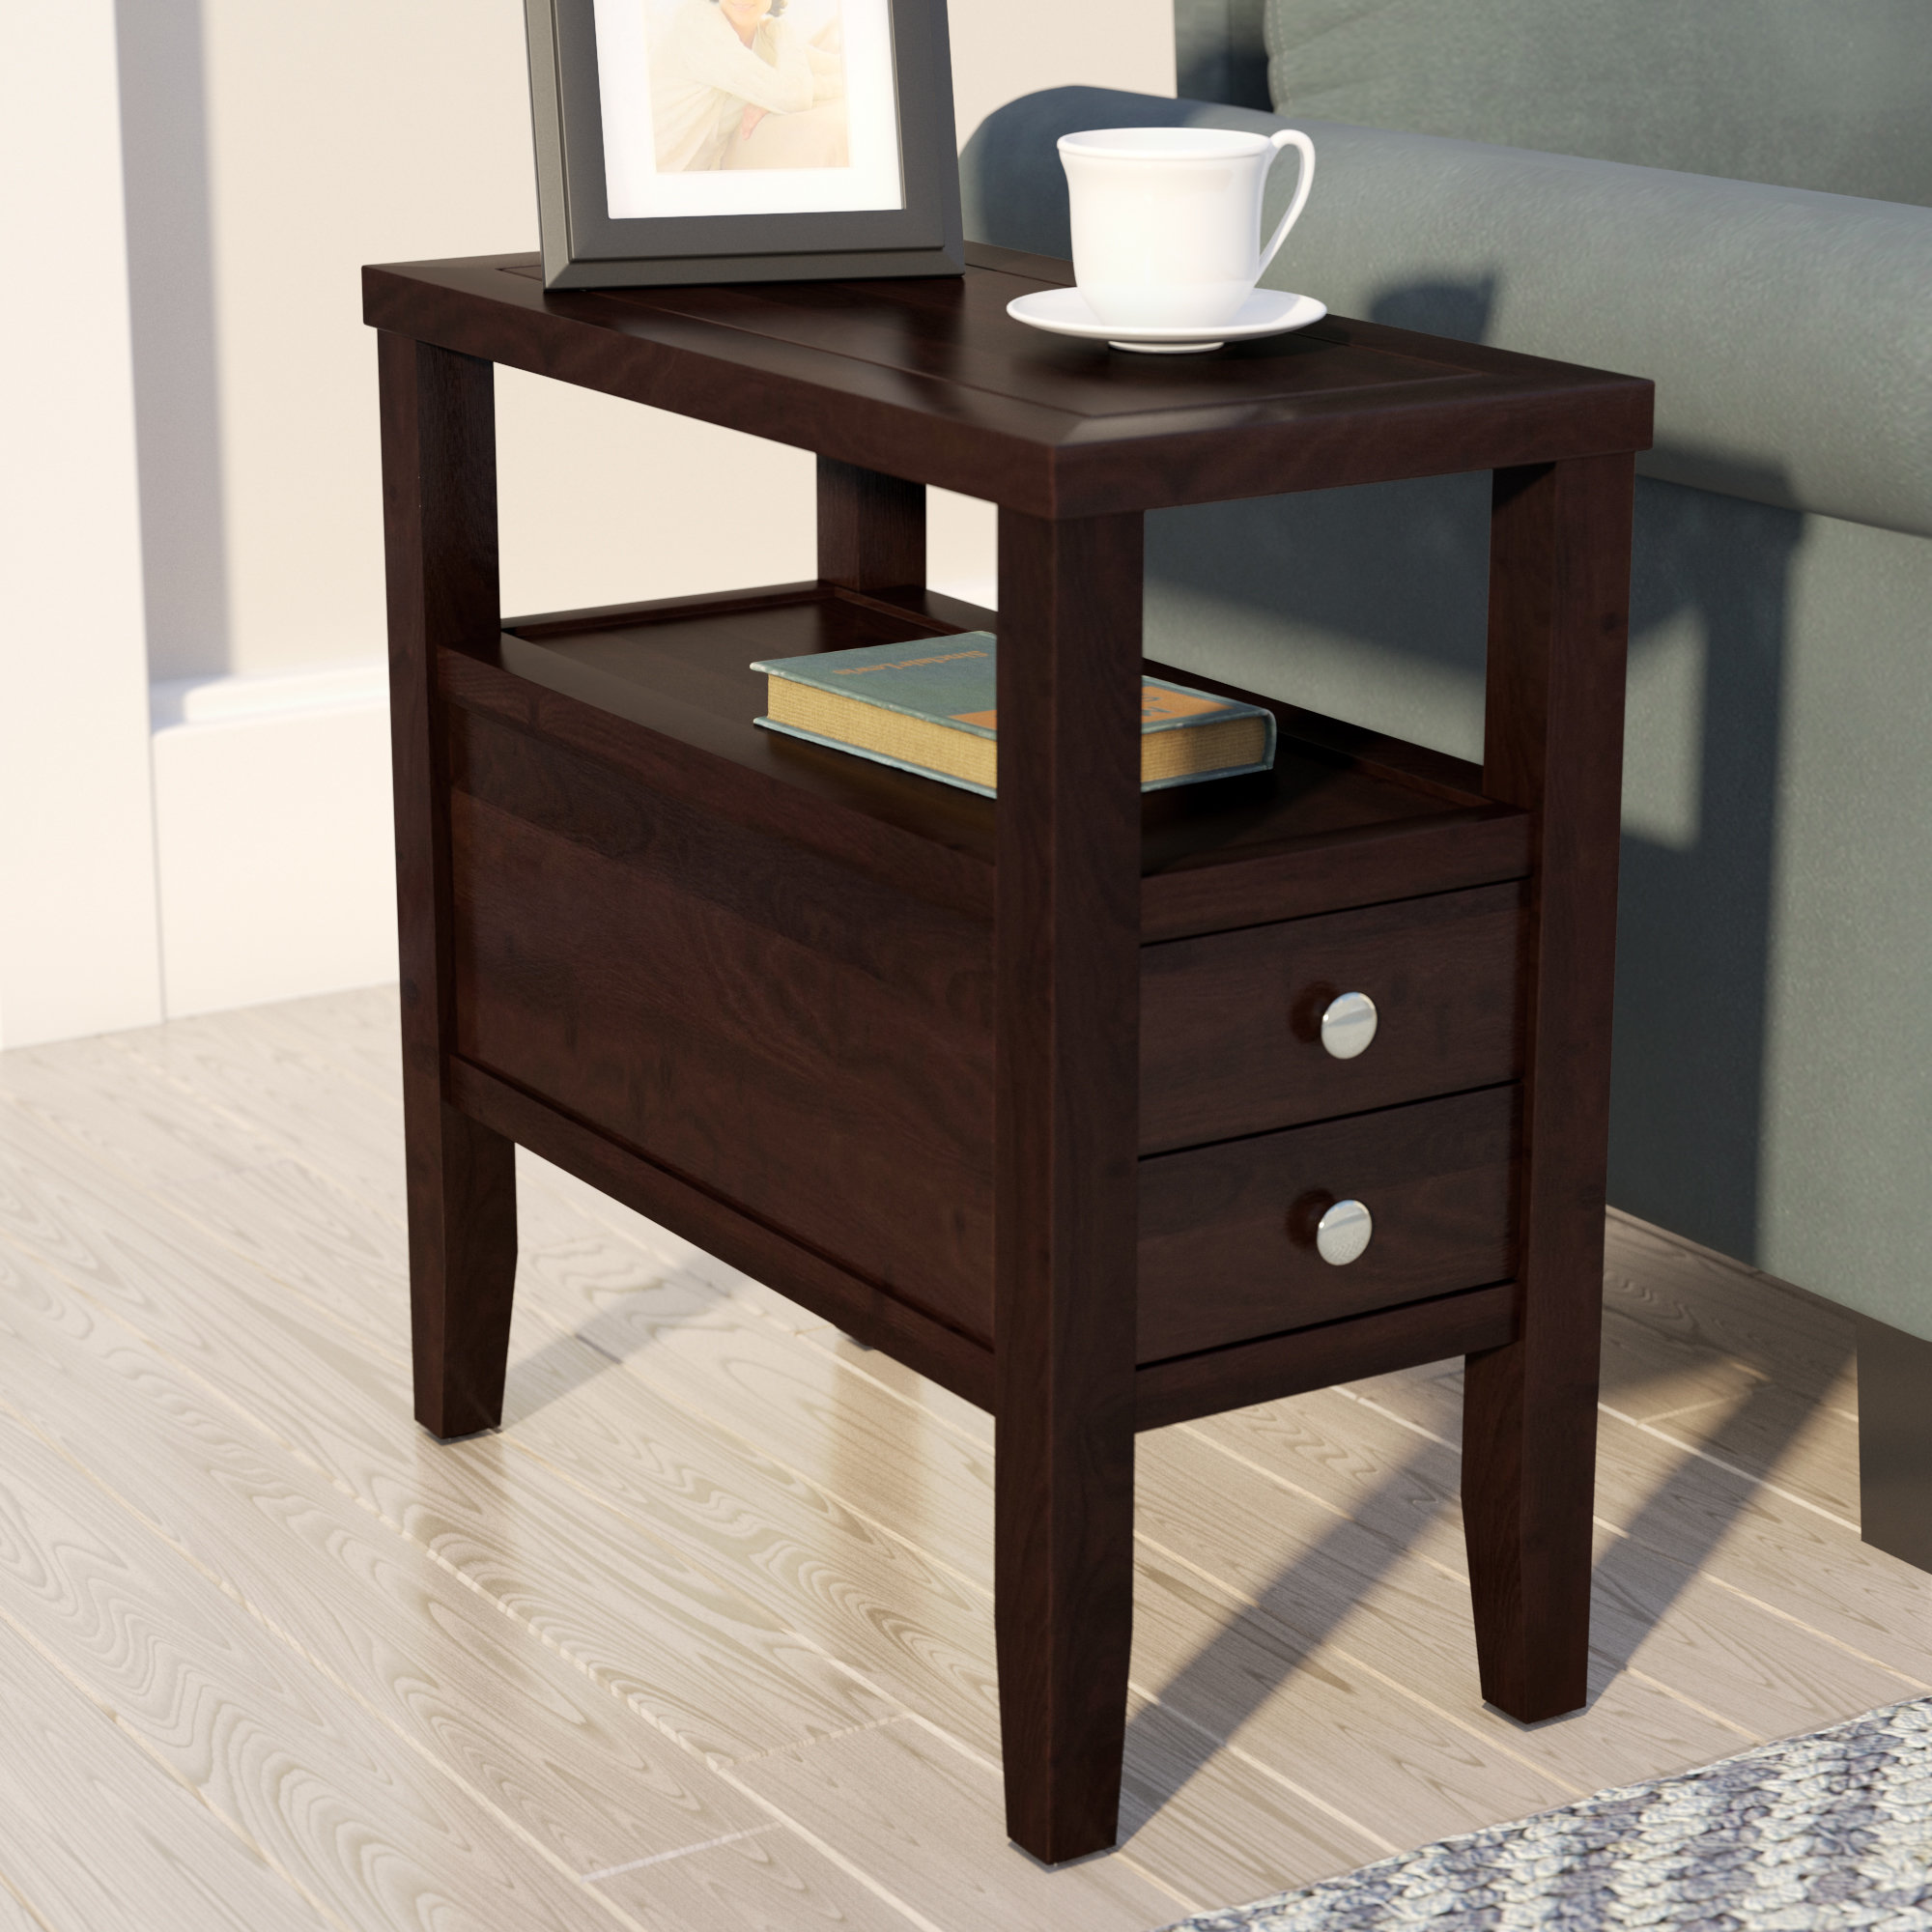 rectangle small under end side tables you love gahagan table with storage round accent large white tablecloths breakfast nook victorian sofa oak coffee width console rustic rod